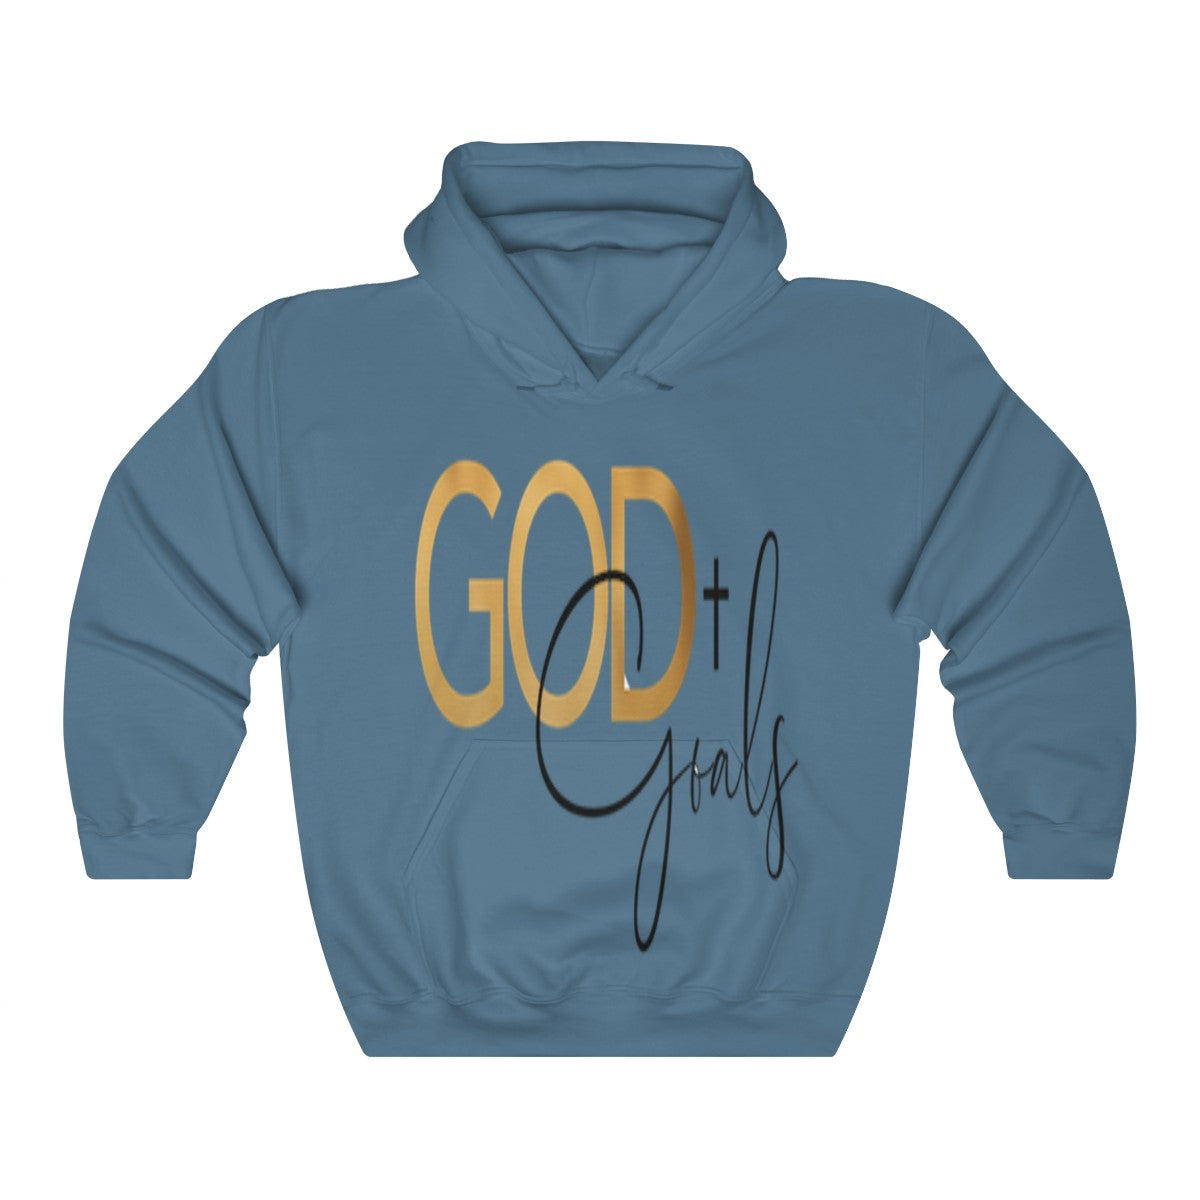 God +Goals Unisex Heavy Blend™ Hooded Sweatshirt